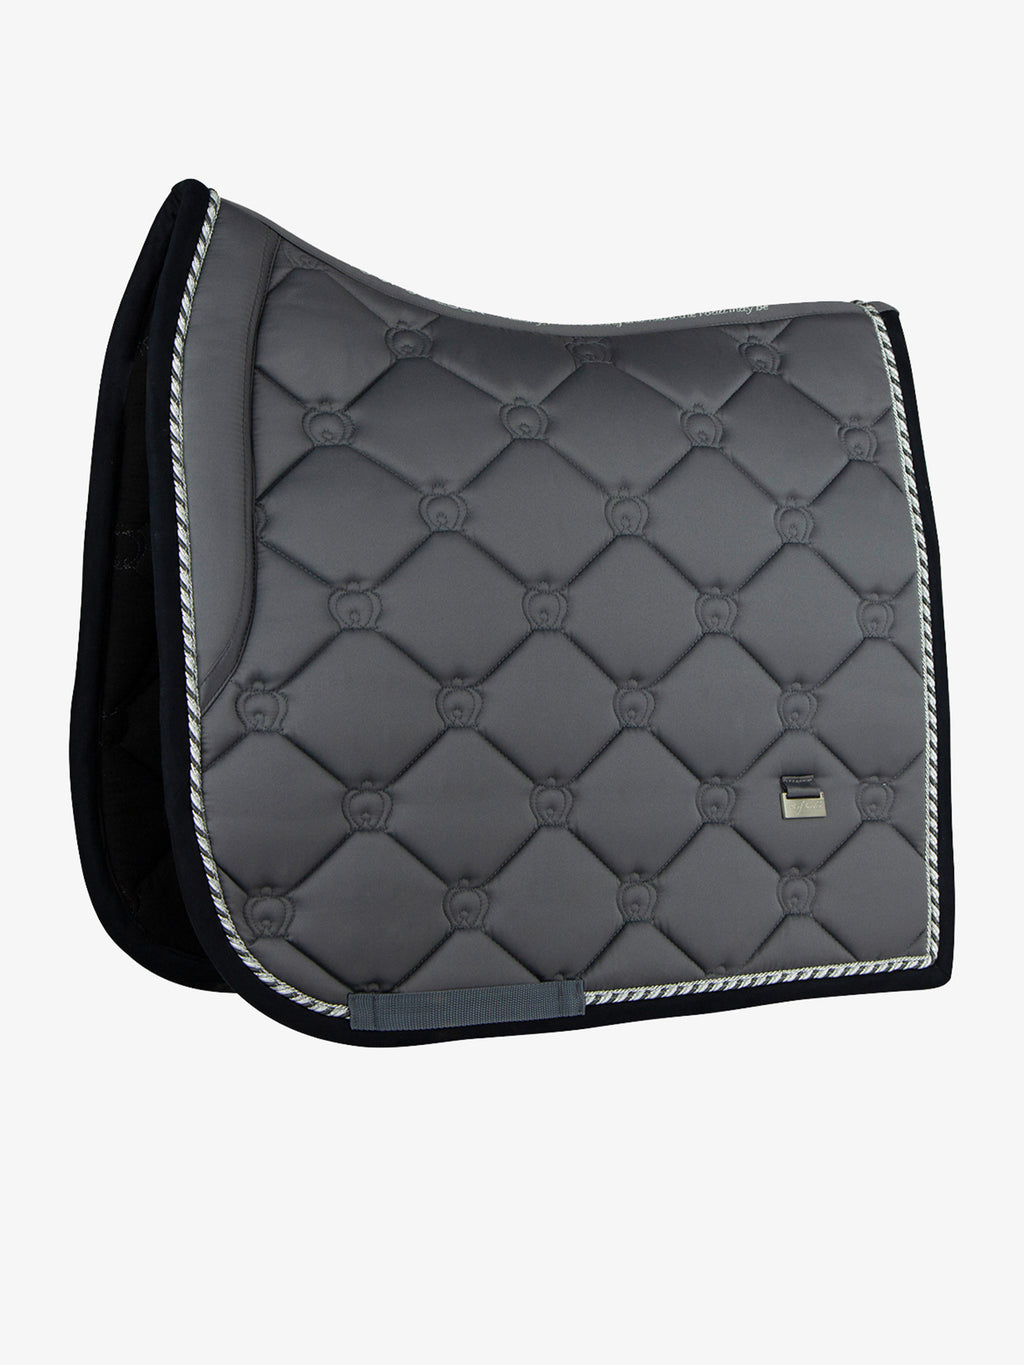 Ps of Sweden Dressage Saddle Pad Anthracite - The Dressage Store